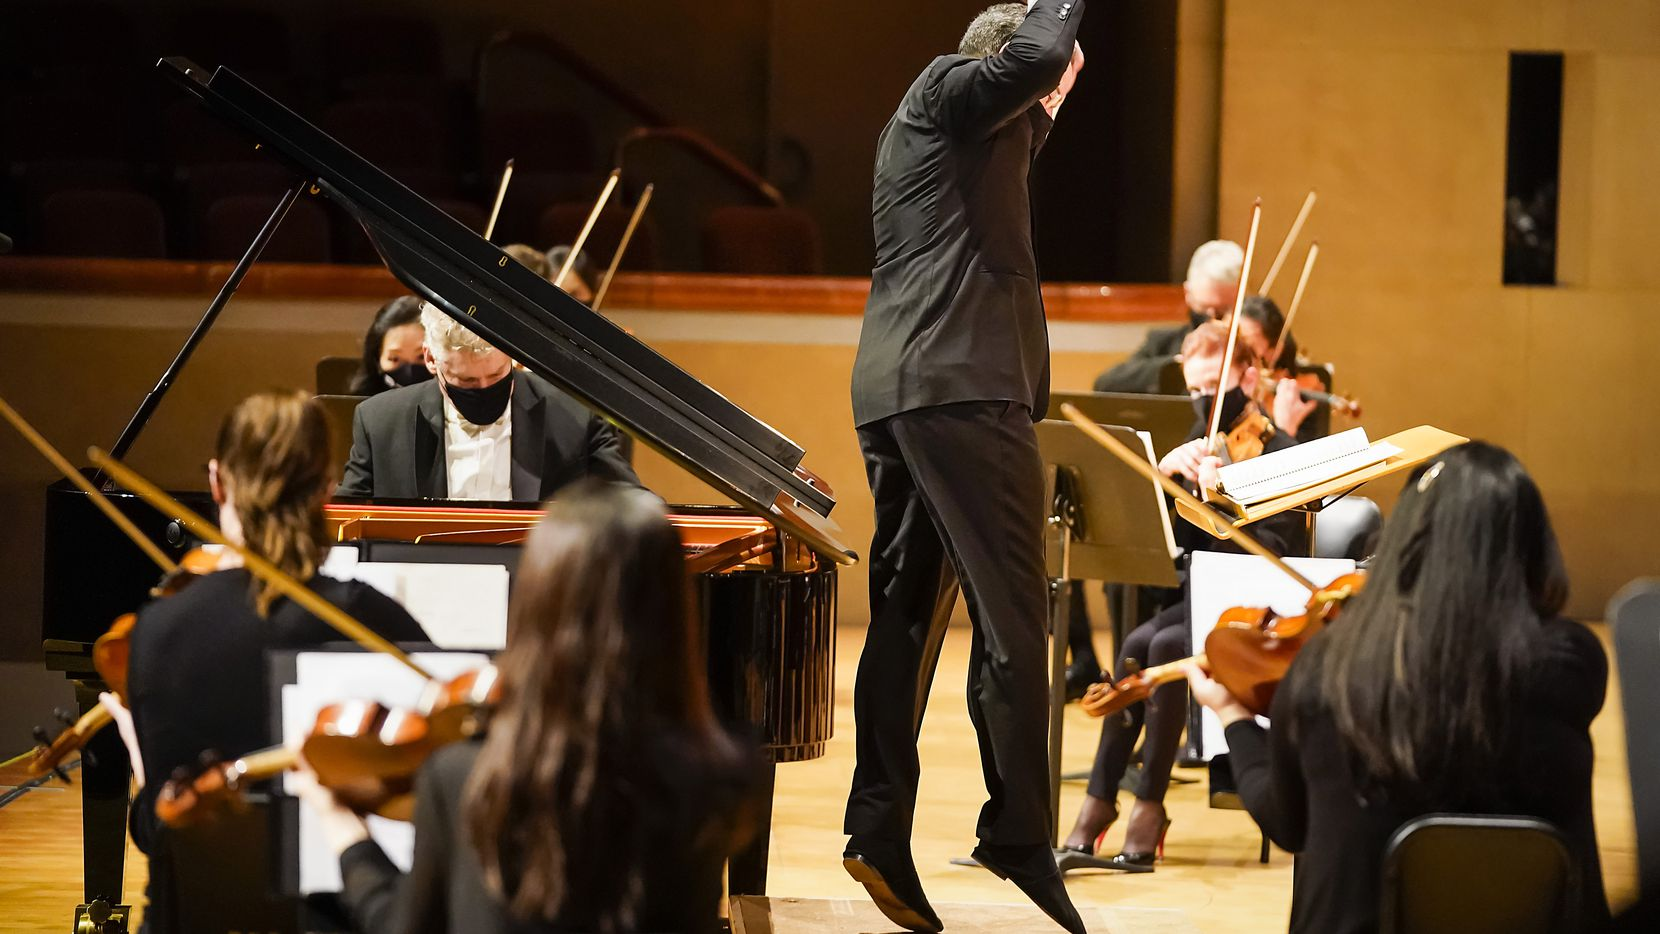 Guest conductor Andrew Grams conducts the Dallas Symphony Orchestra with pianist William Wolfram at the Meyerson Symphony Center on March 19, 2021, in Dallas.